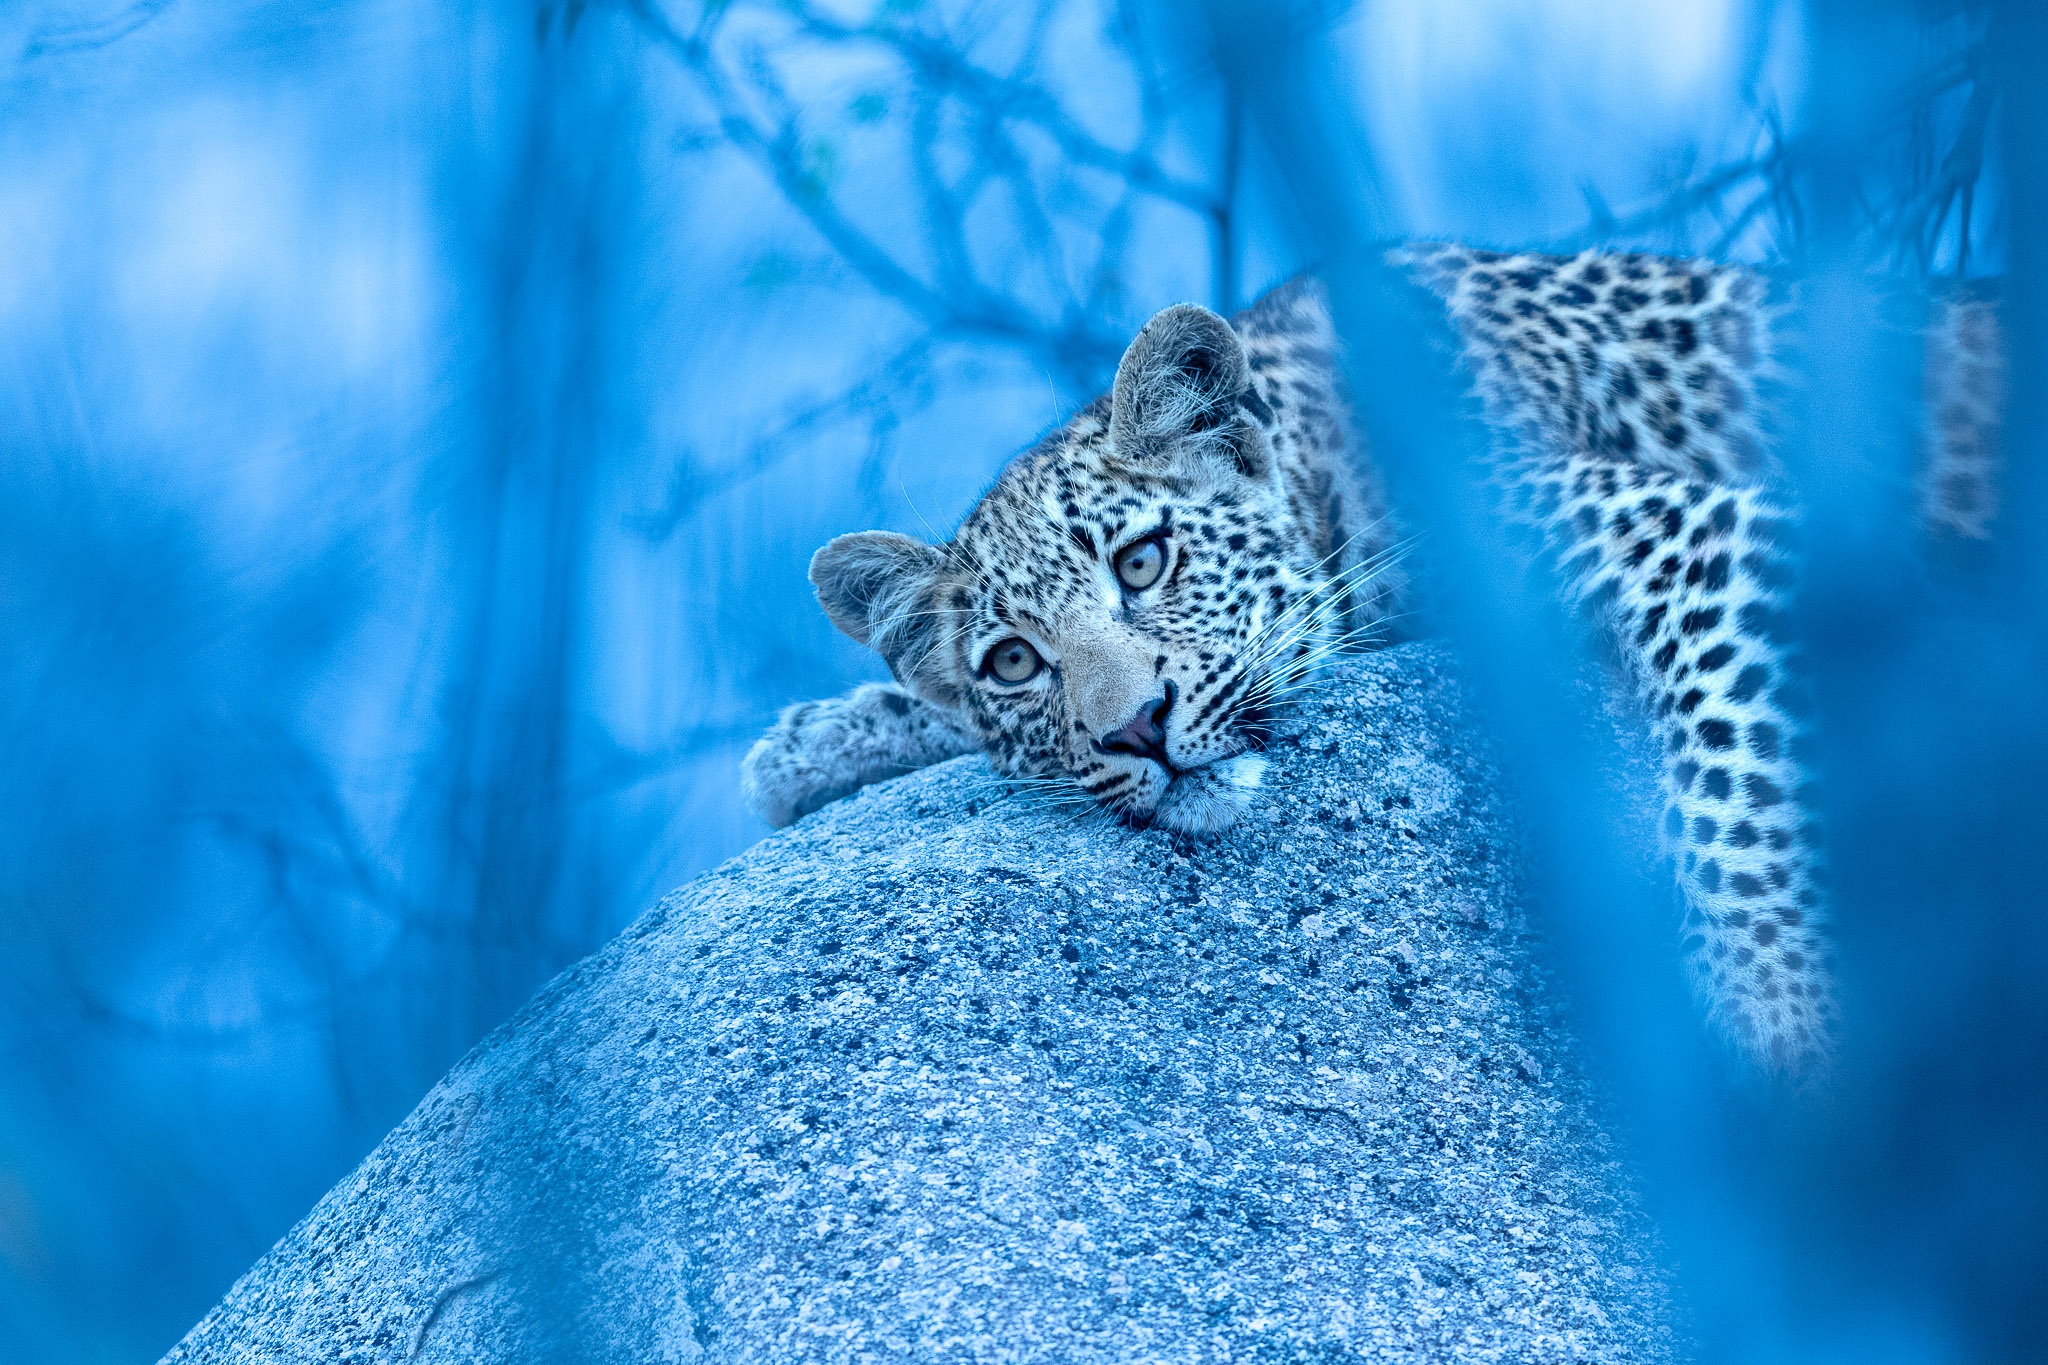 A leopard cub lying on a rock with a blue background